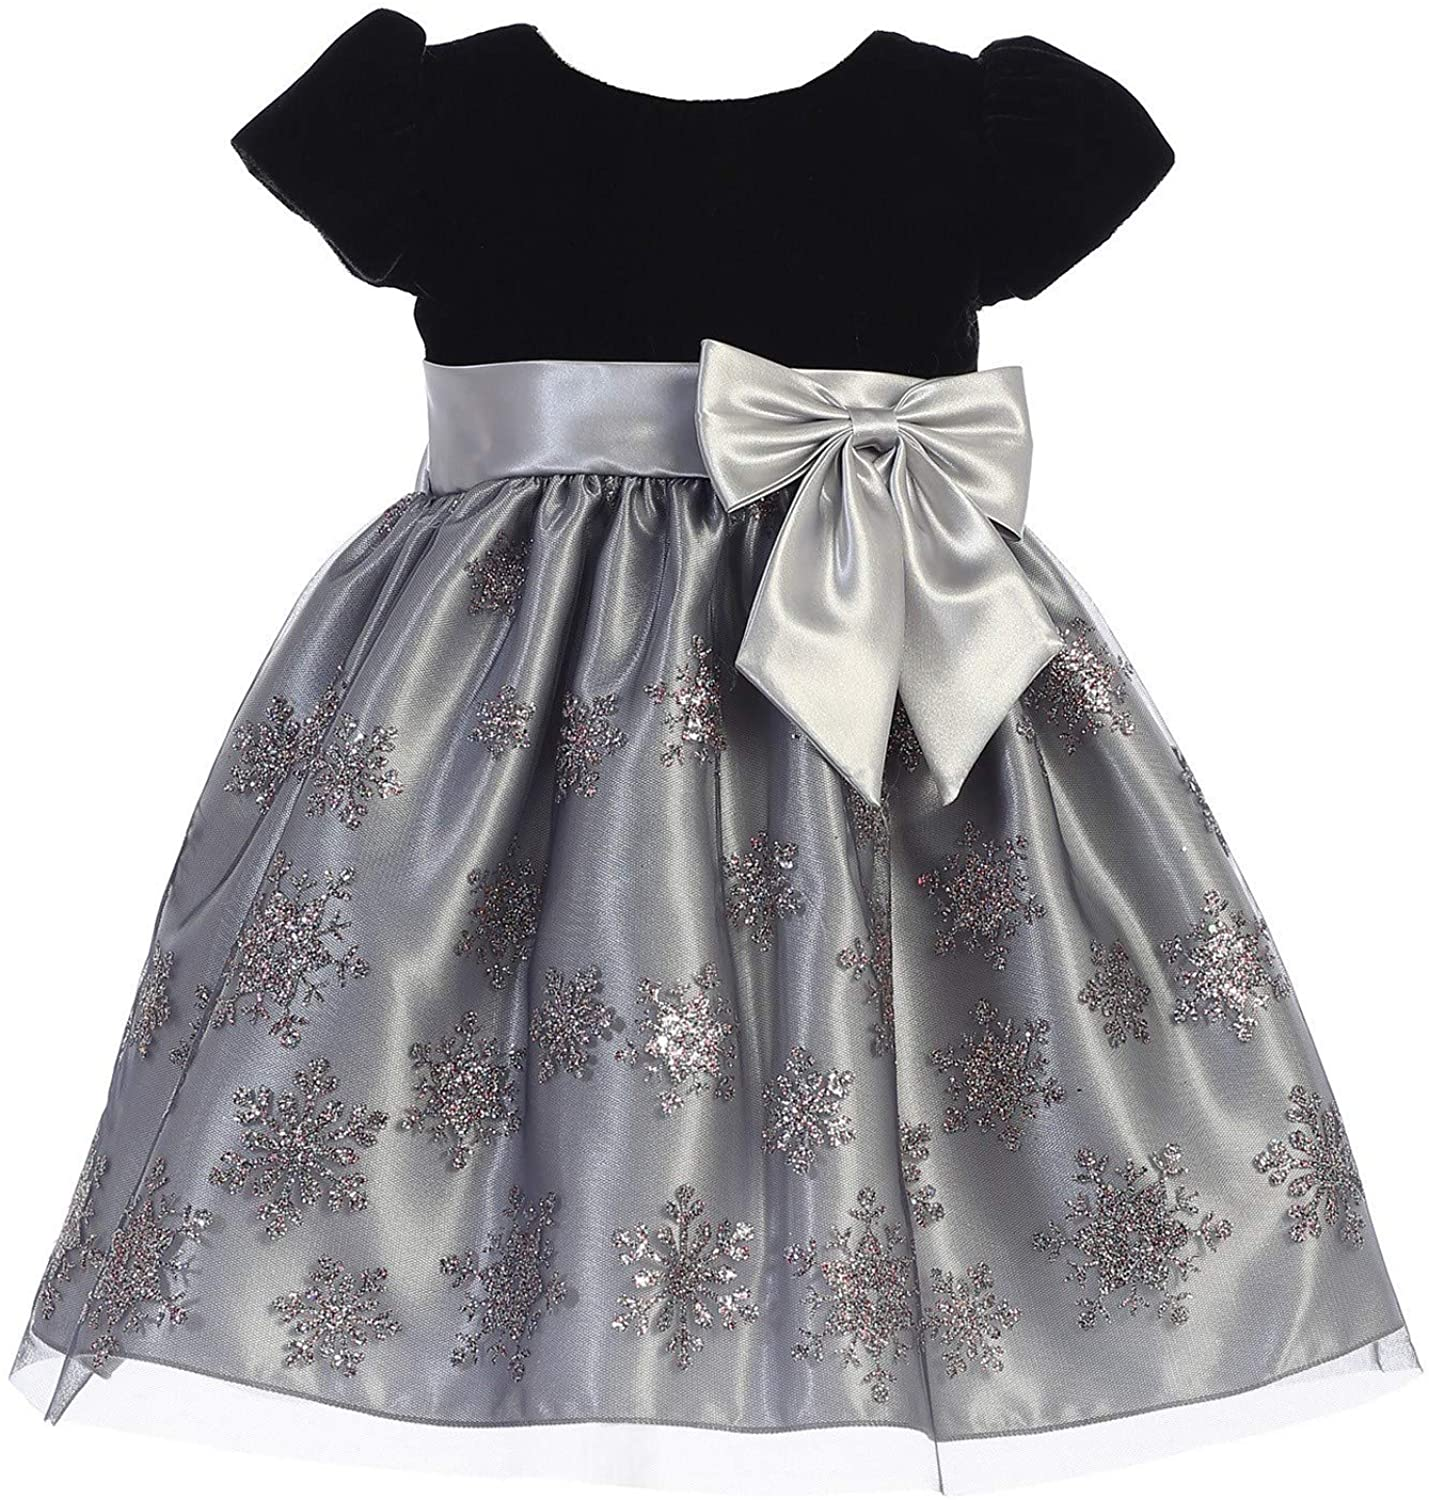 Lito Little Girls Silver Black Velvet Glitter Tulle Christmas Dress 3T